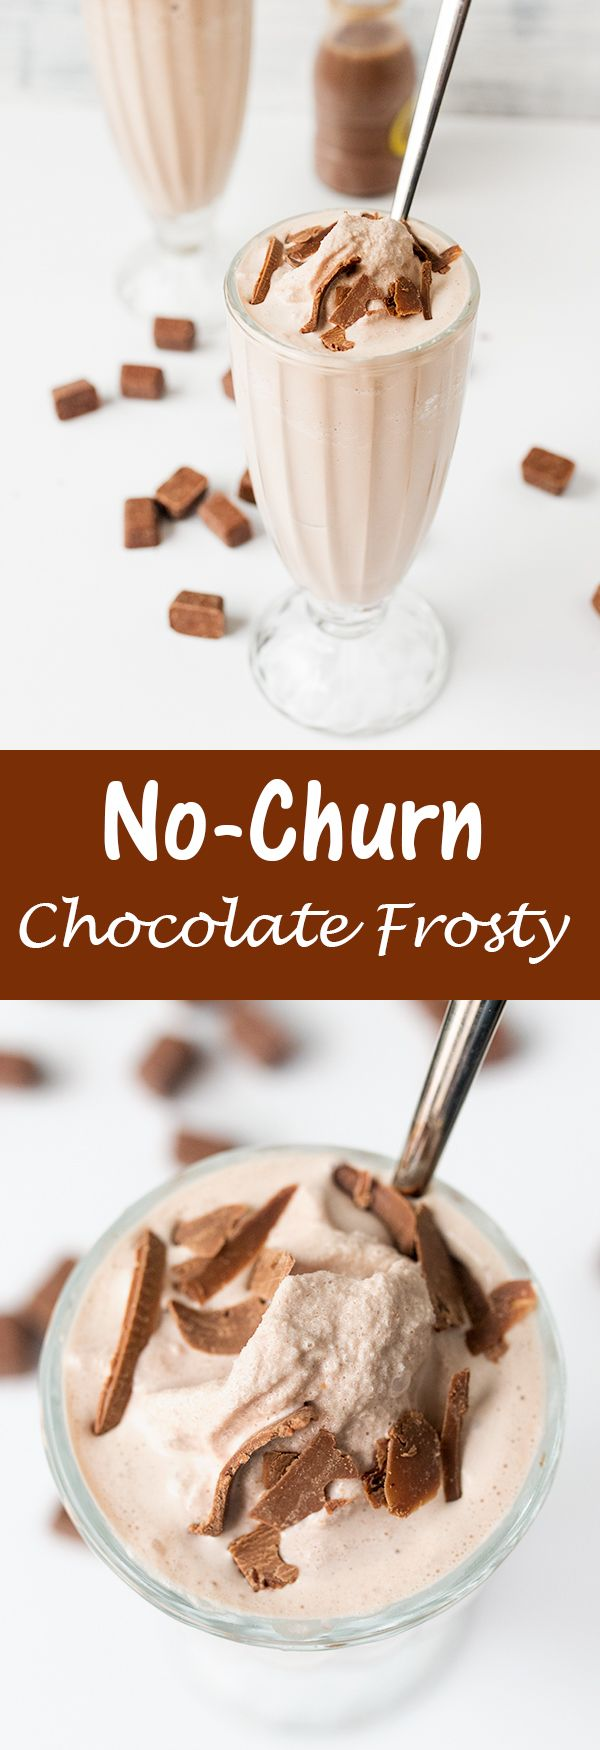 Make this delicious CHOCOLATE FROSTY at home - without cool whip. No ice cream maker needed either!